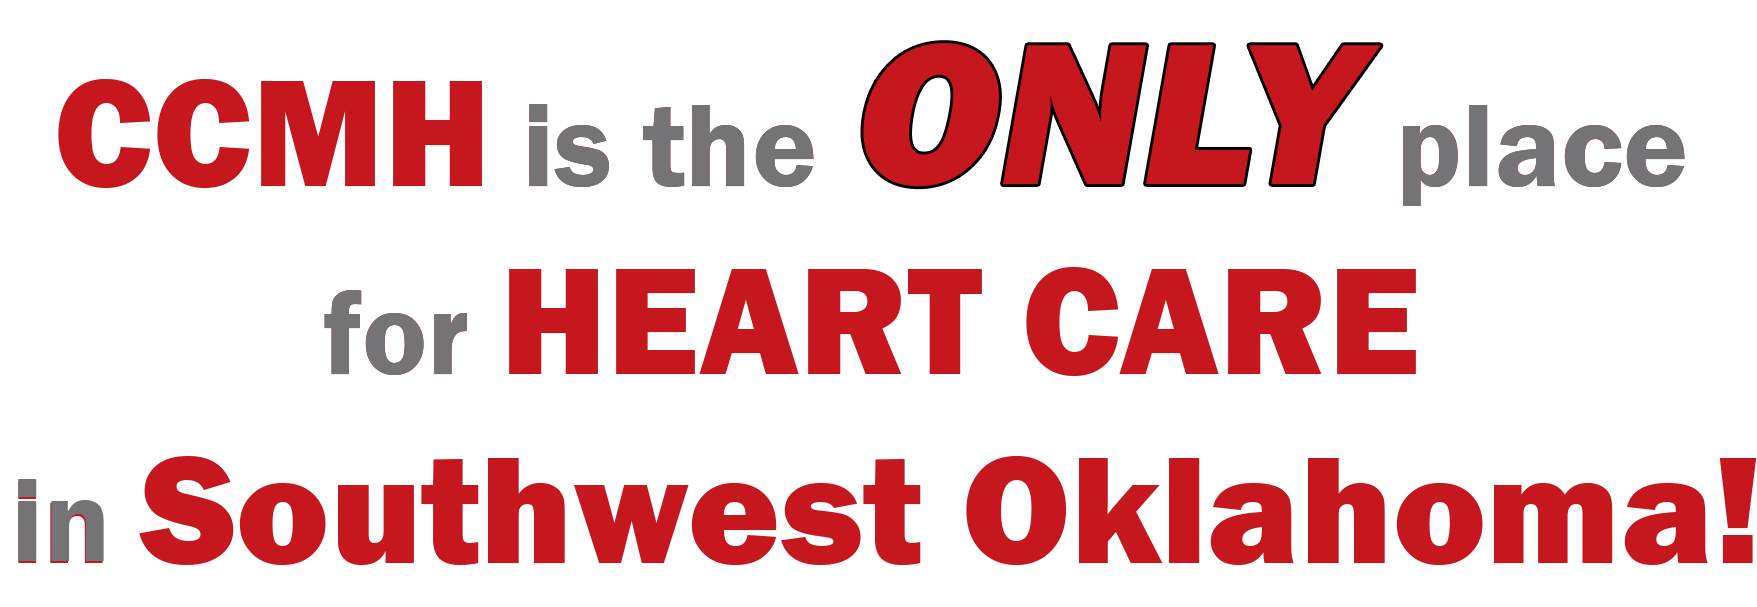 Only Heart Care in Southwest Oklahoma